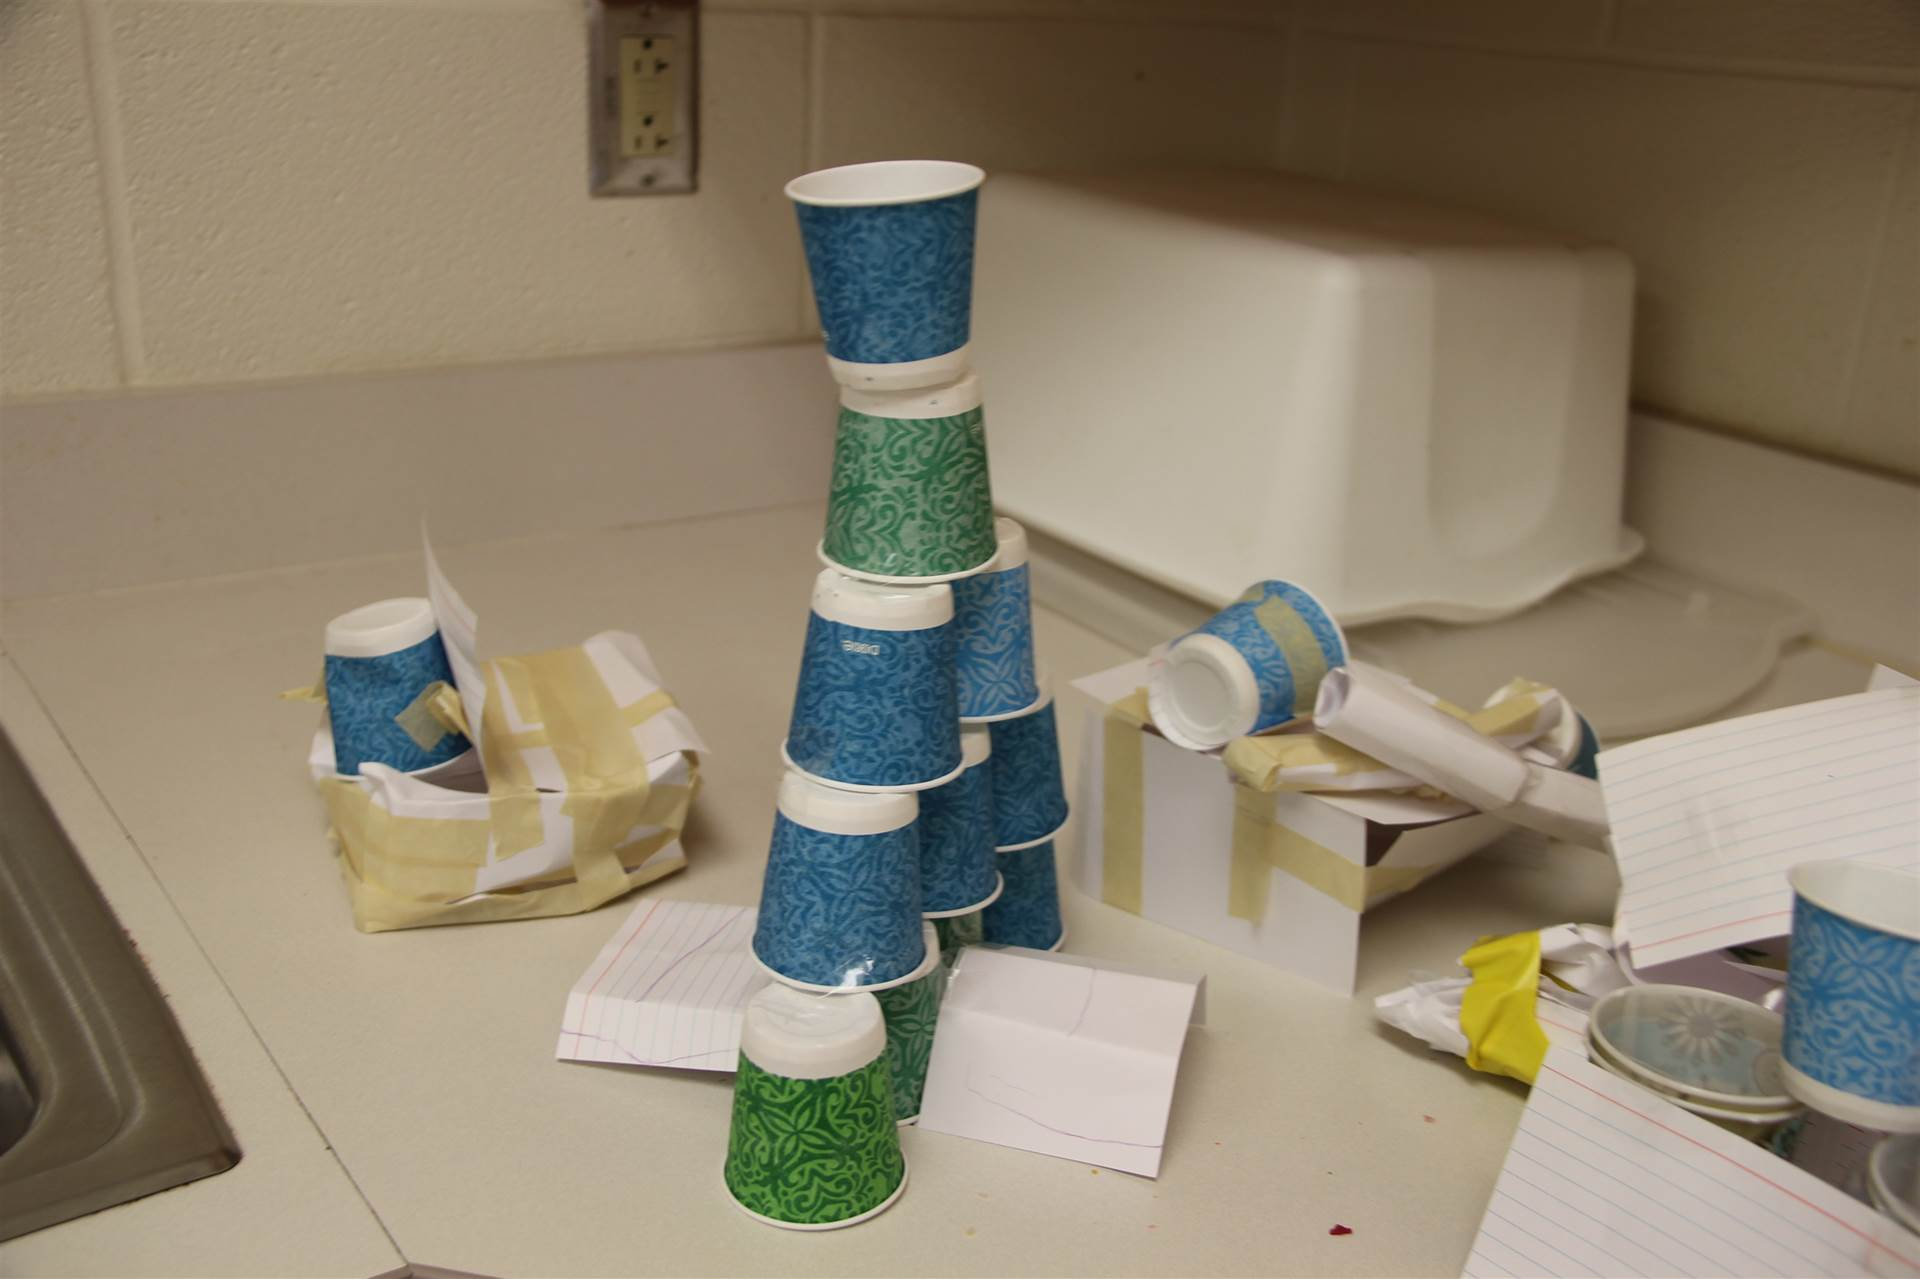 three little pigs challenge houses made of paper cups.